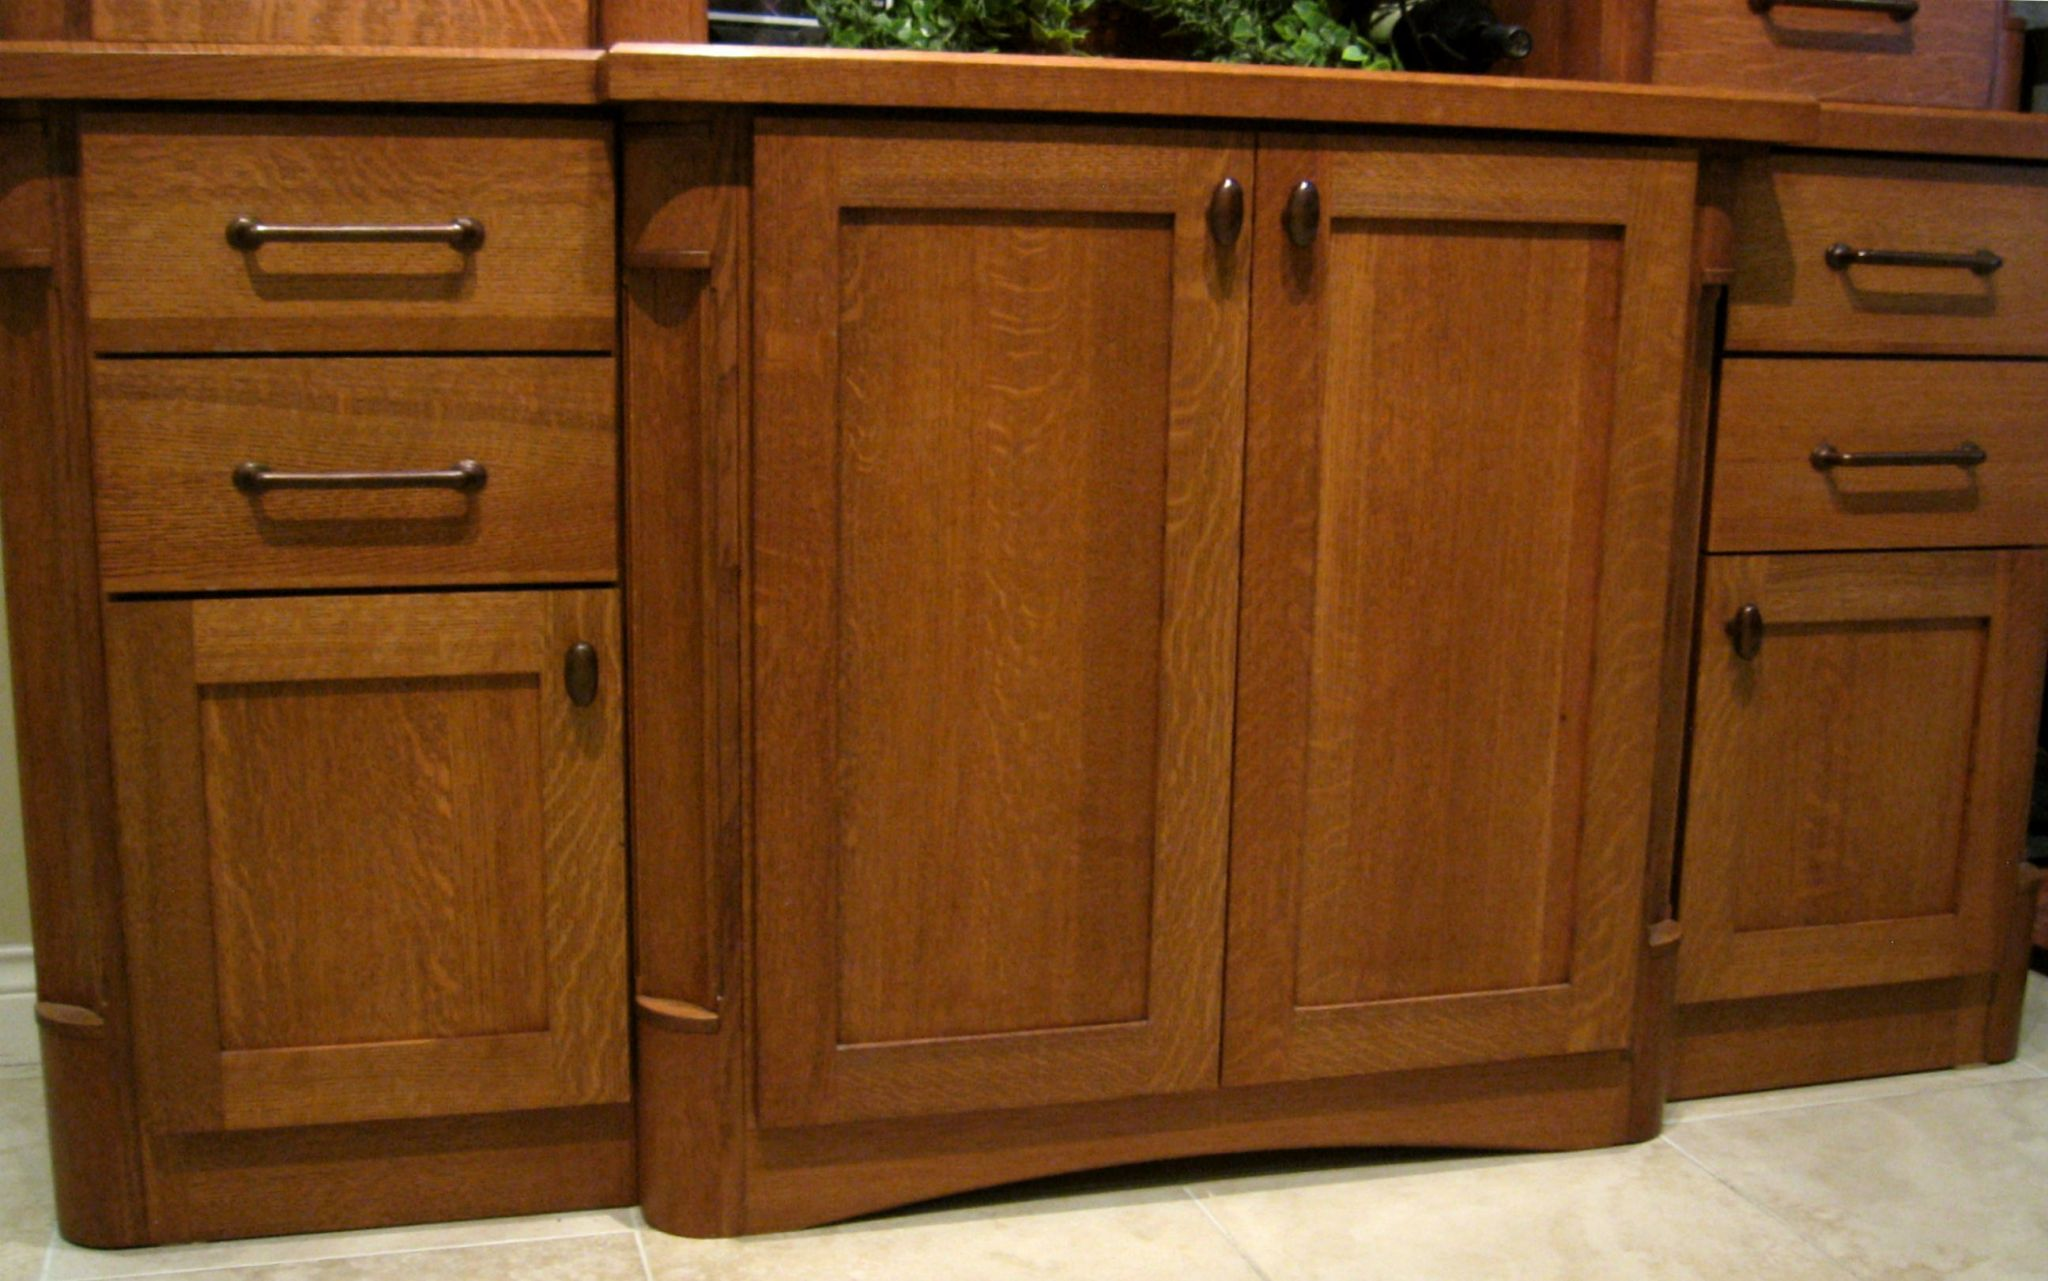 crystal cabinet works bkc kitchen amp bath oak kitchen cabinet hardware kitchen